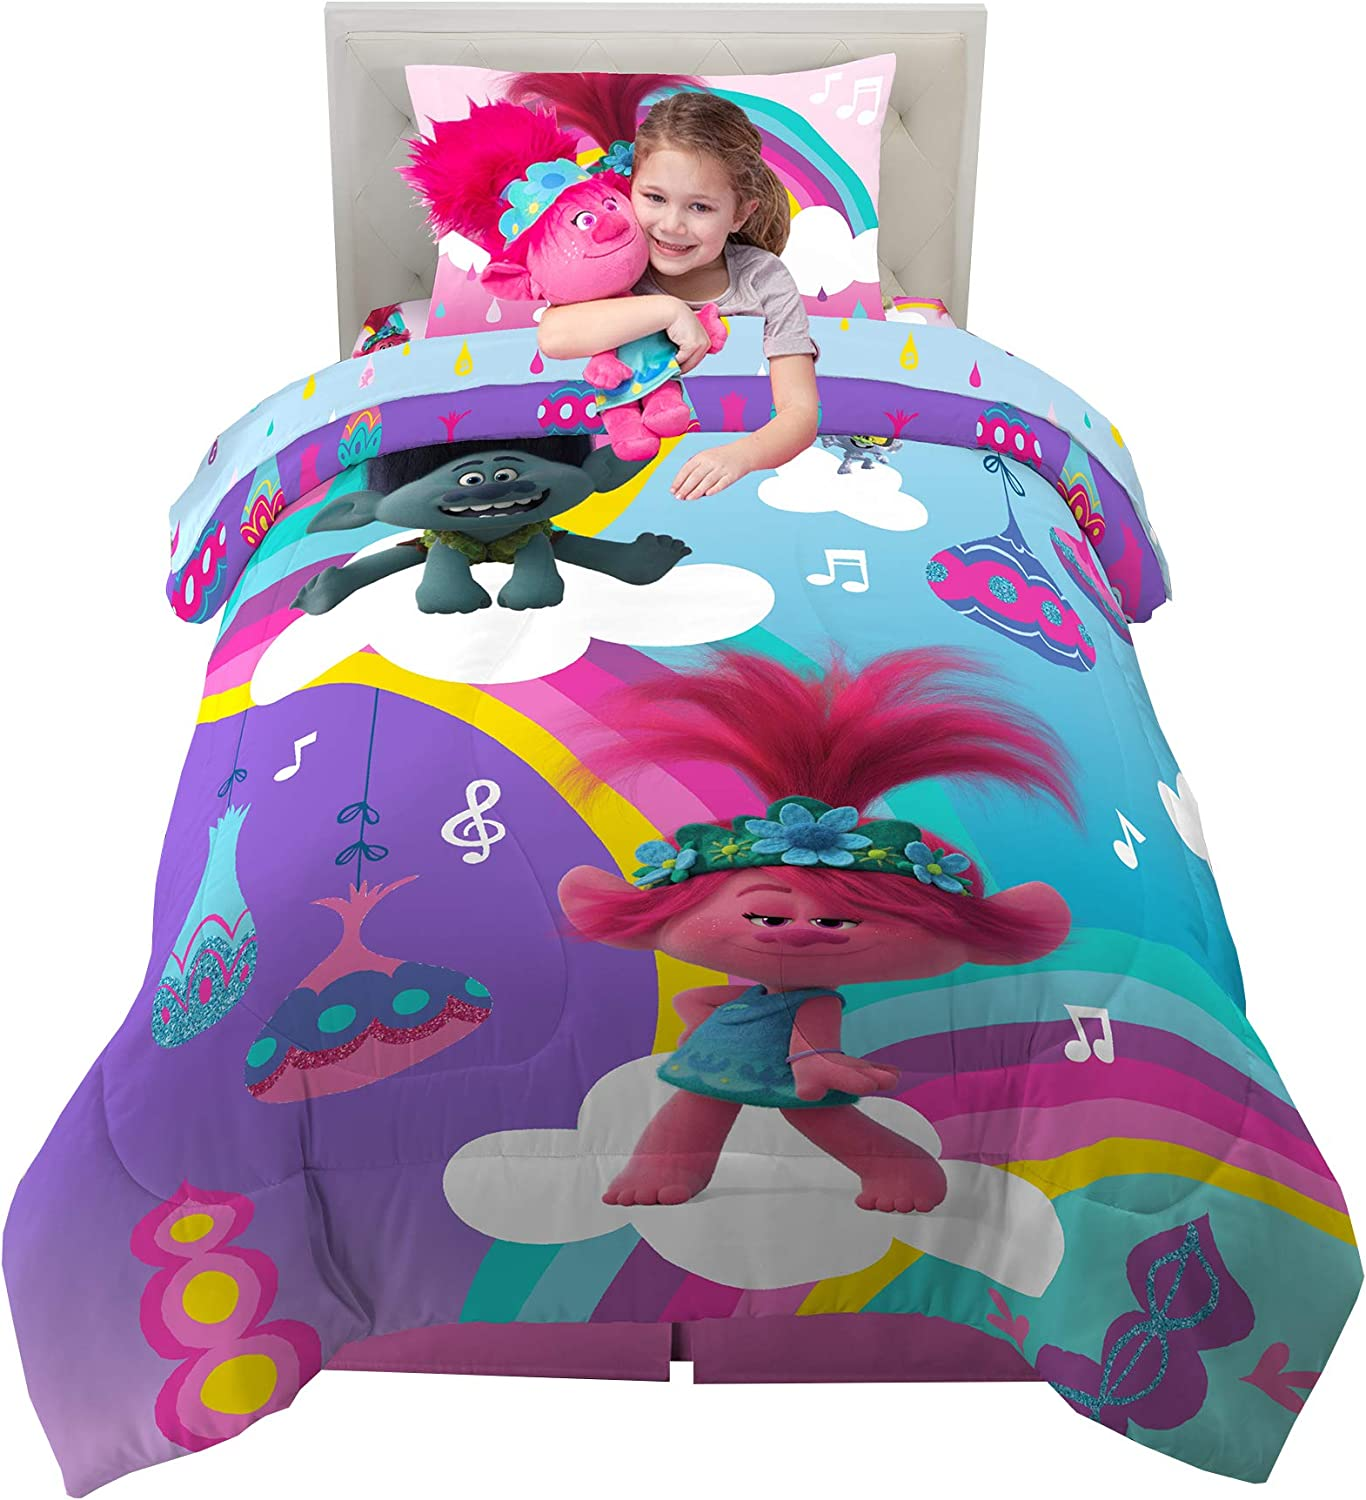 Franco Kids Bedding Super Soft Comforter with Sheets and Plush Cuddle Pillow Set, 5 Piece Twin Size, Trolls World Tour